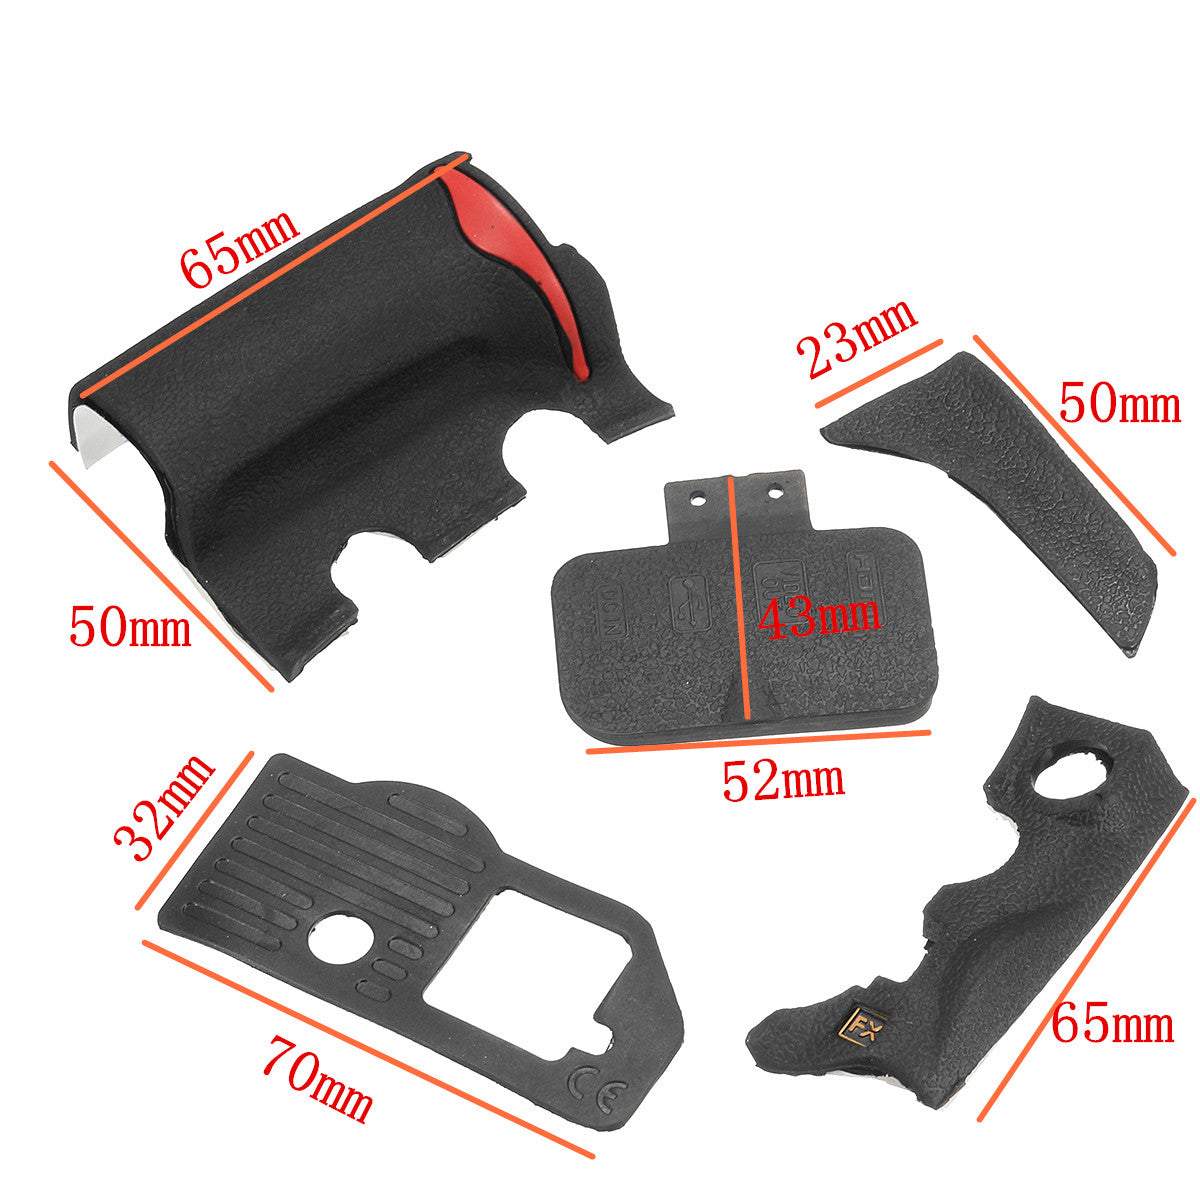 5 Pieces Repair Part of Grip Rubber Cover Unit Black For Nikon D700 Camera With Tape